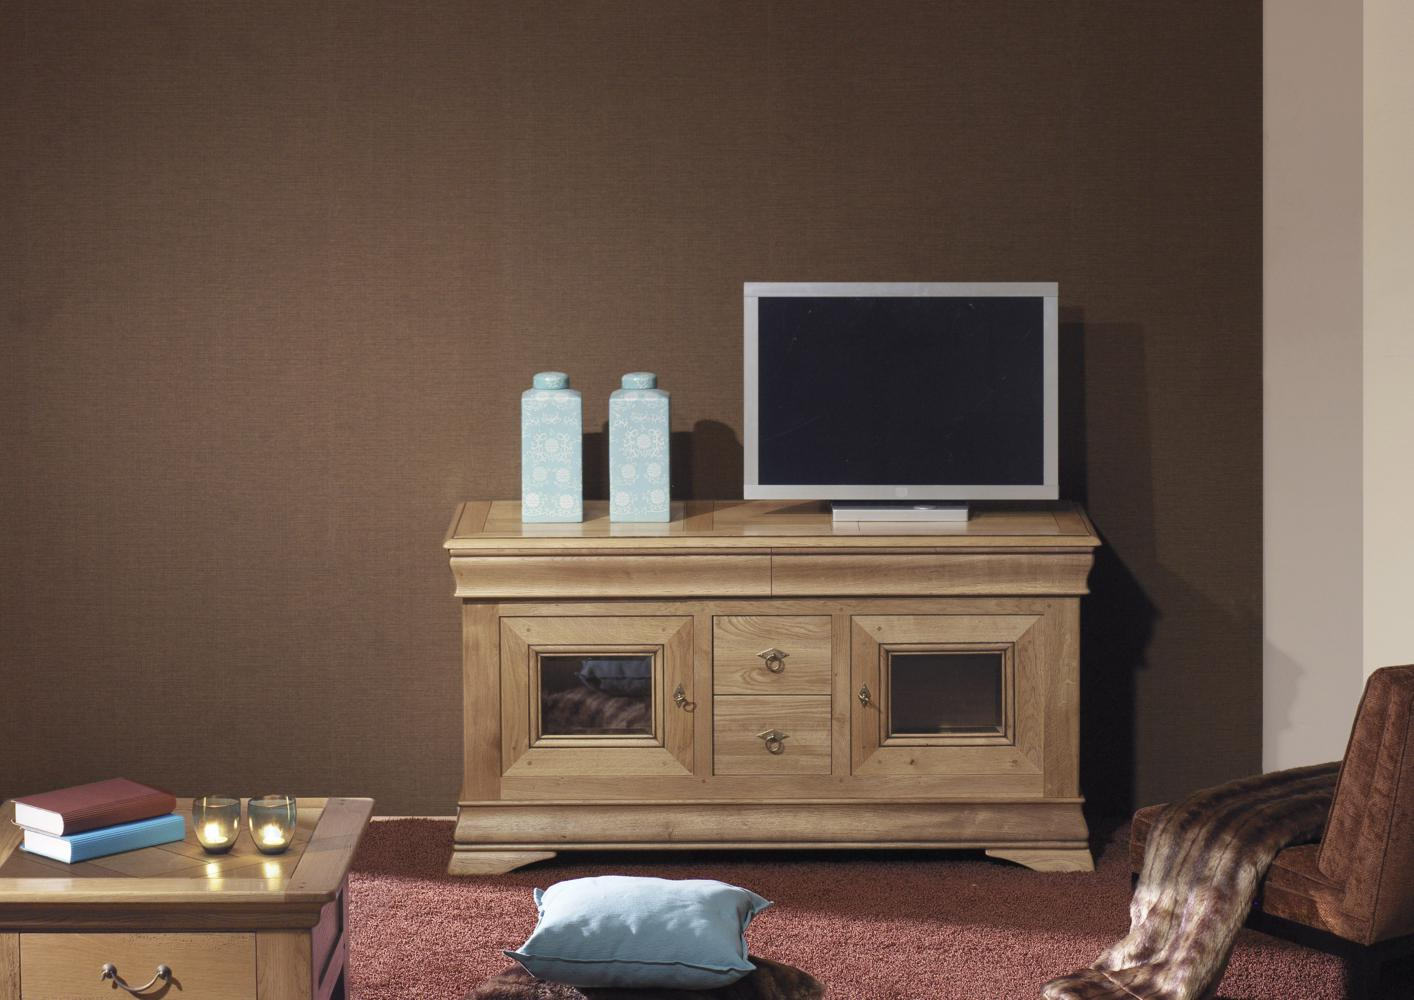 acheter votre meuble tv hi fi chez simeuble. Black Bedroom Furniture Sets. Home Design Ideas